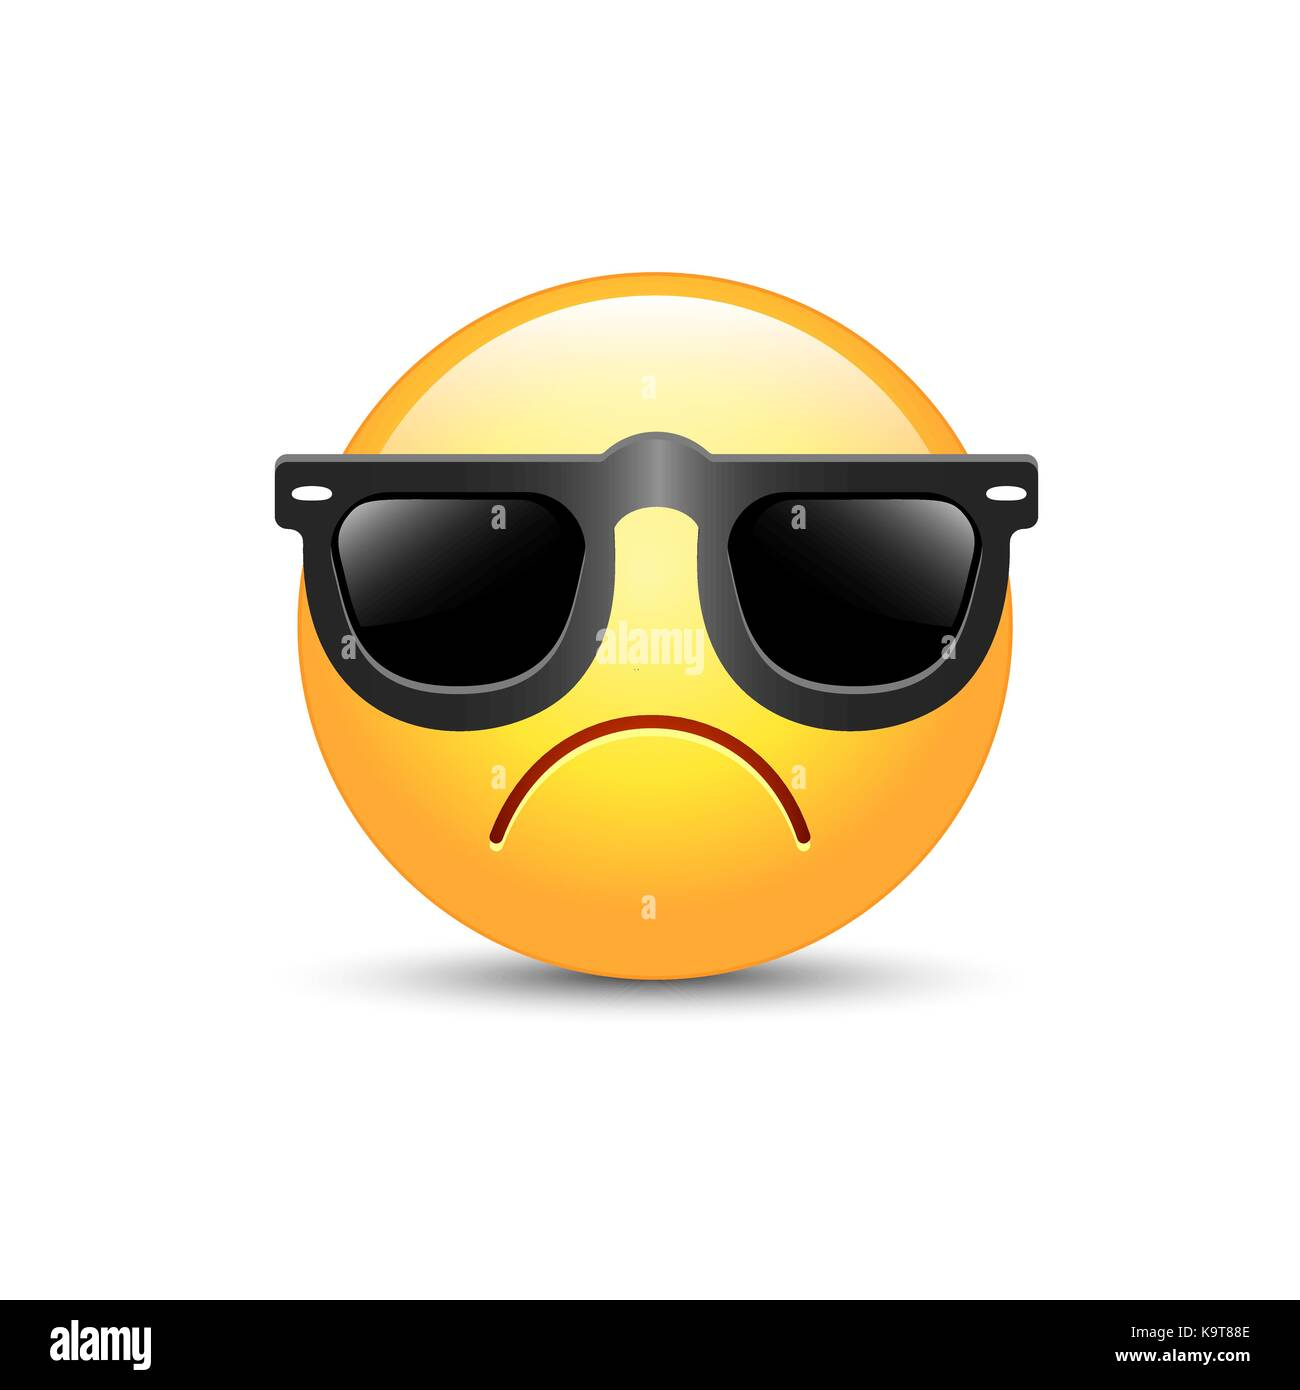 21c1530cfd7 Angry emoji face with sunglasses. Cute sad emoticon wearing black sunglasses